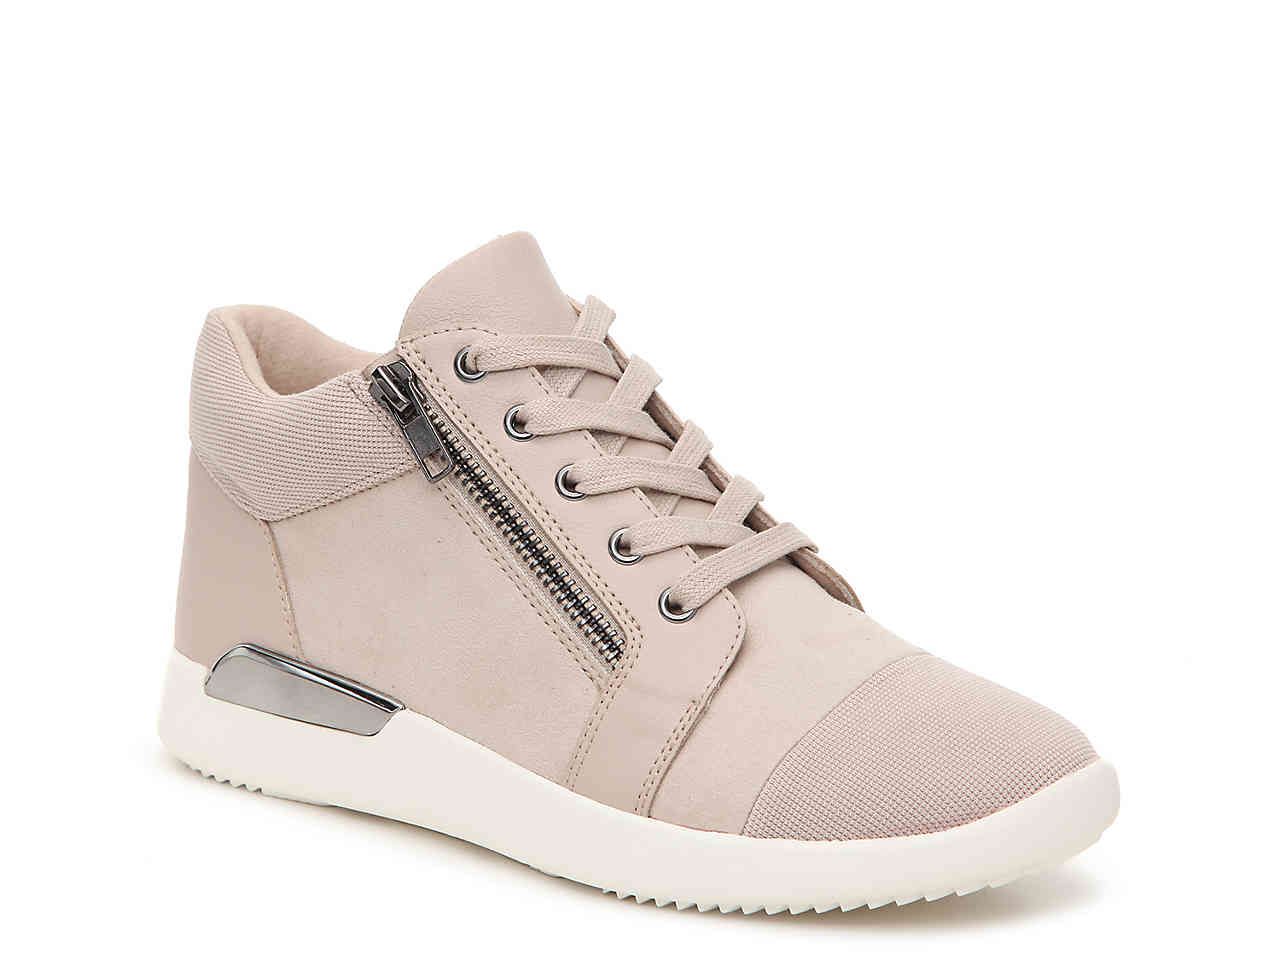 Get a cool pair of high top sneakers for women to look stylish